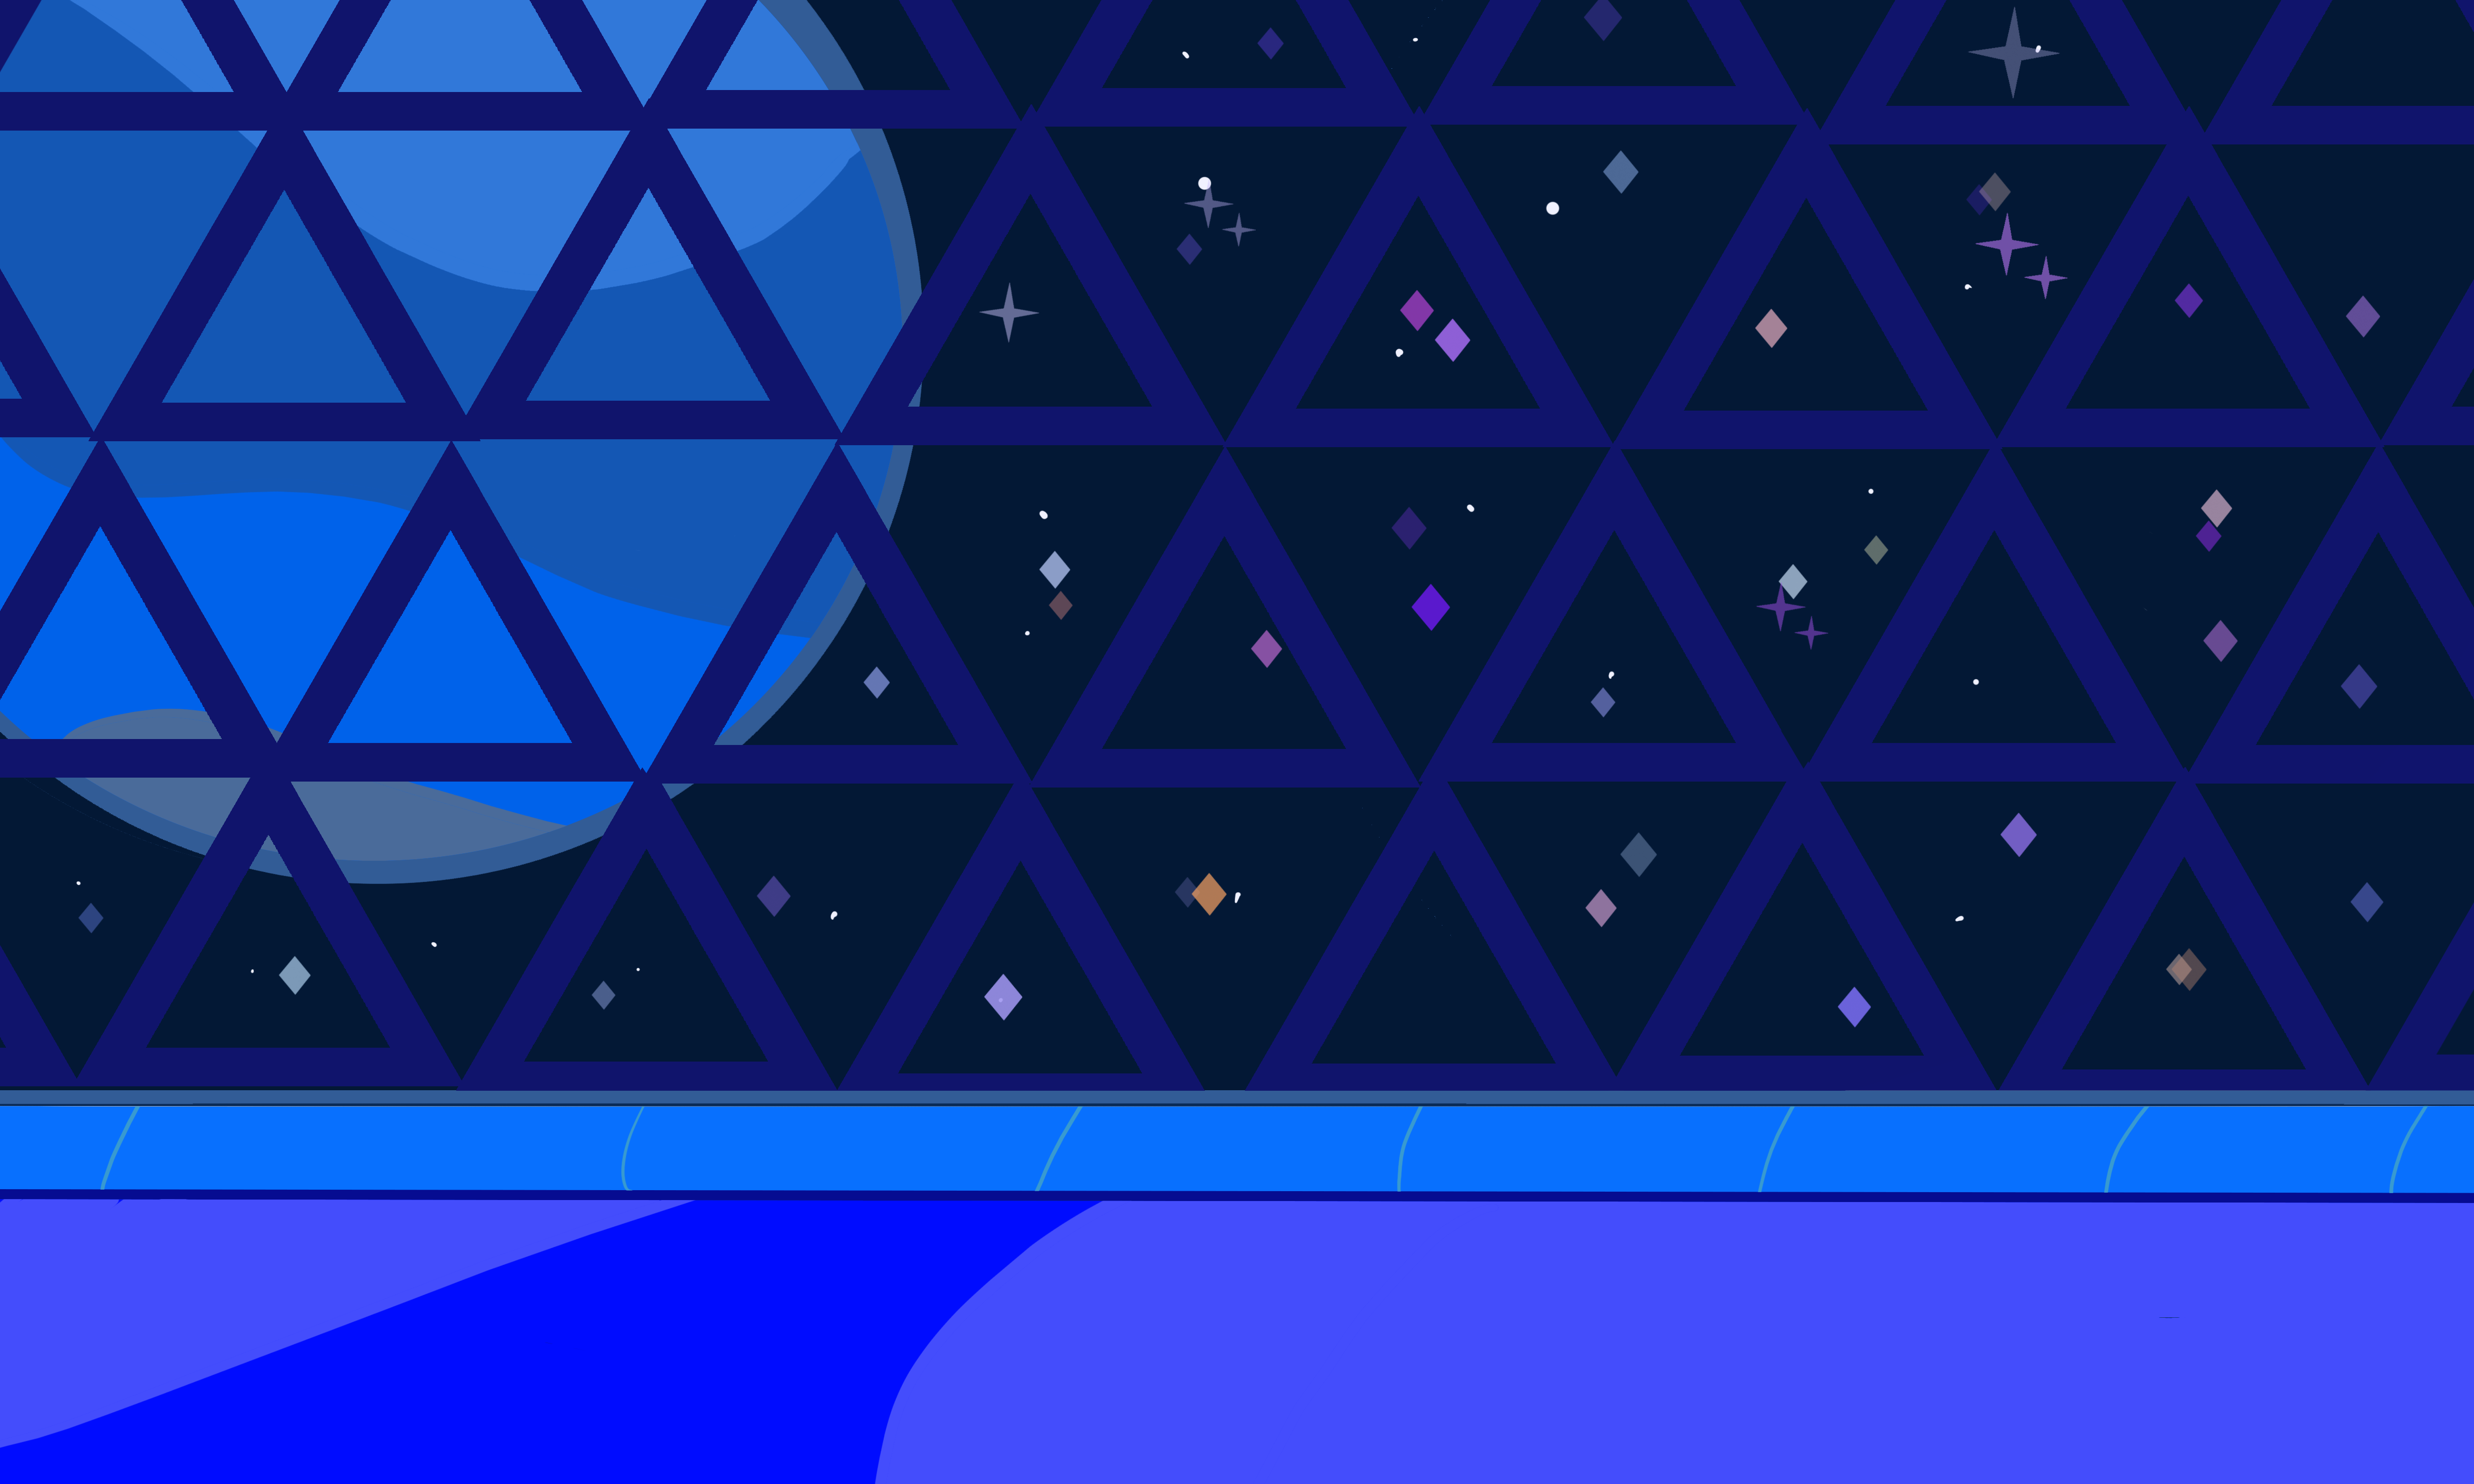 Tried drawing a SU background   thats Neptune in the background 5000x3000